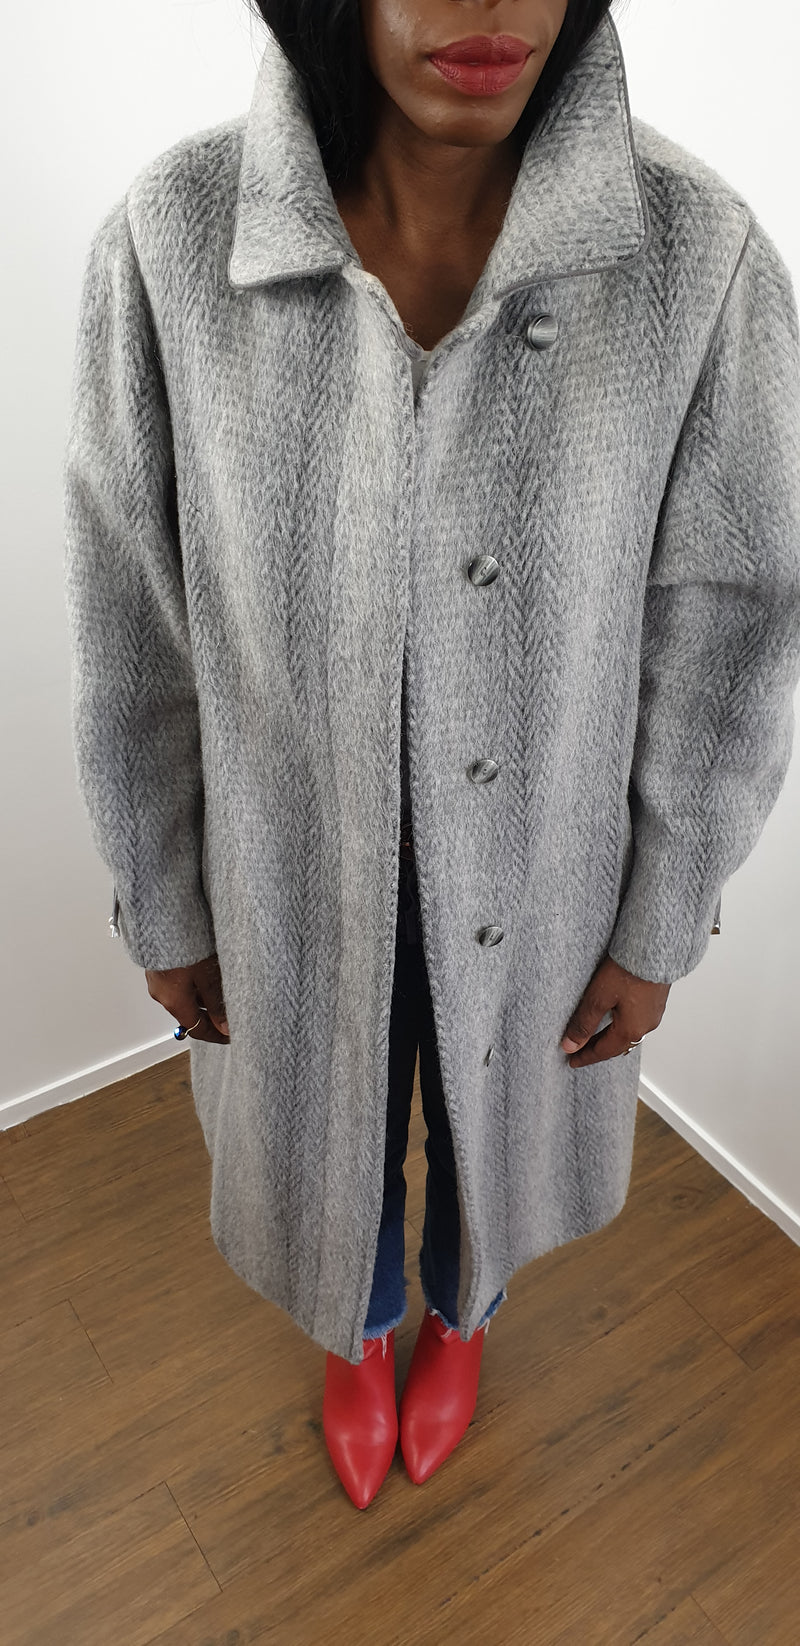 Manteau long gris - T.F.T Vintage Shop